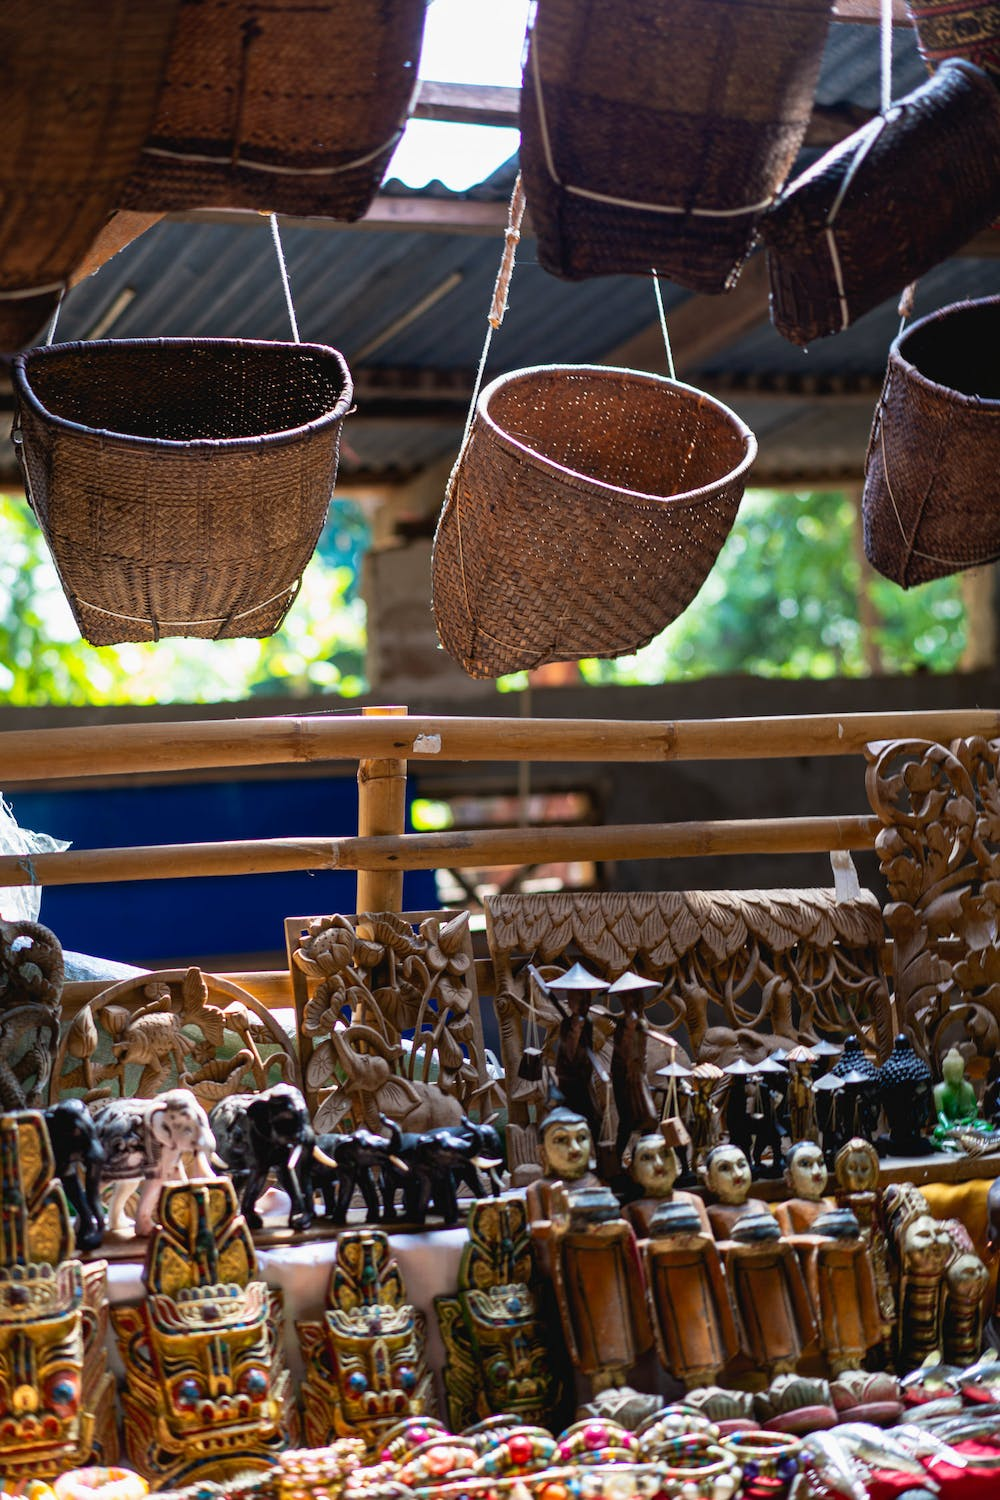 Handmade painted goods and souvenirs for sale at a vendor stall in the village market of Indein Myanmar